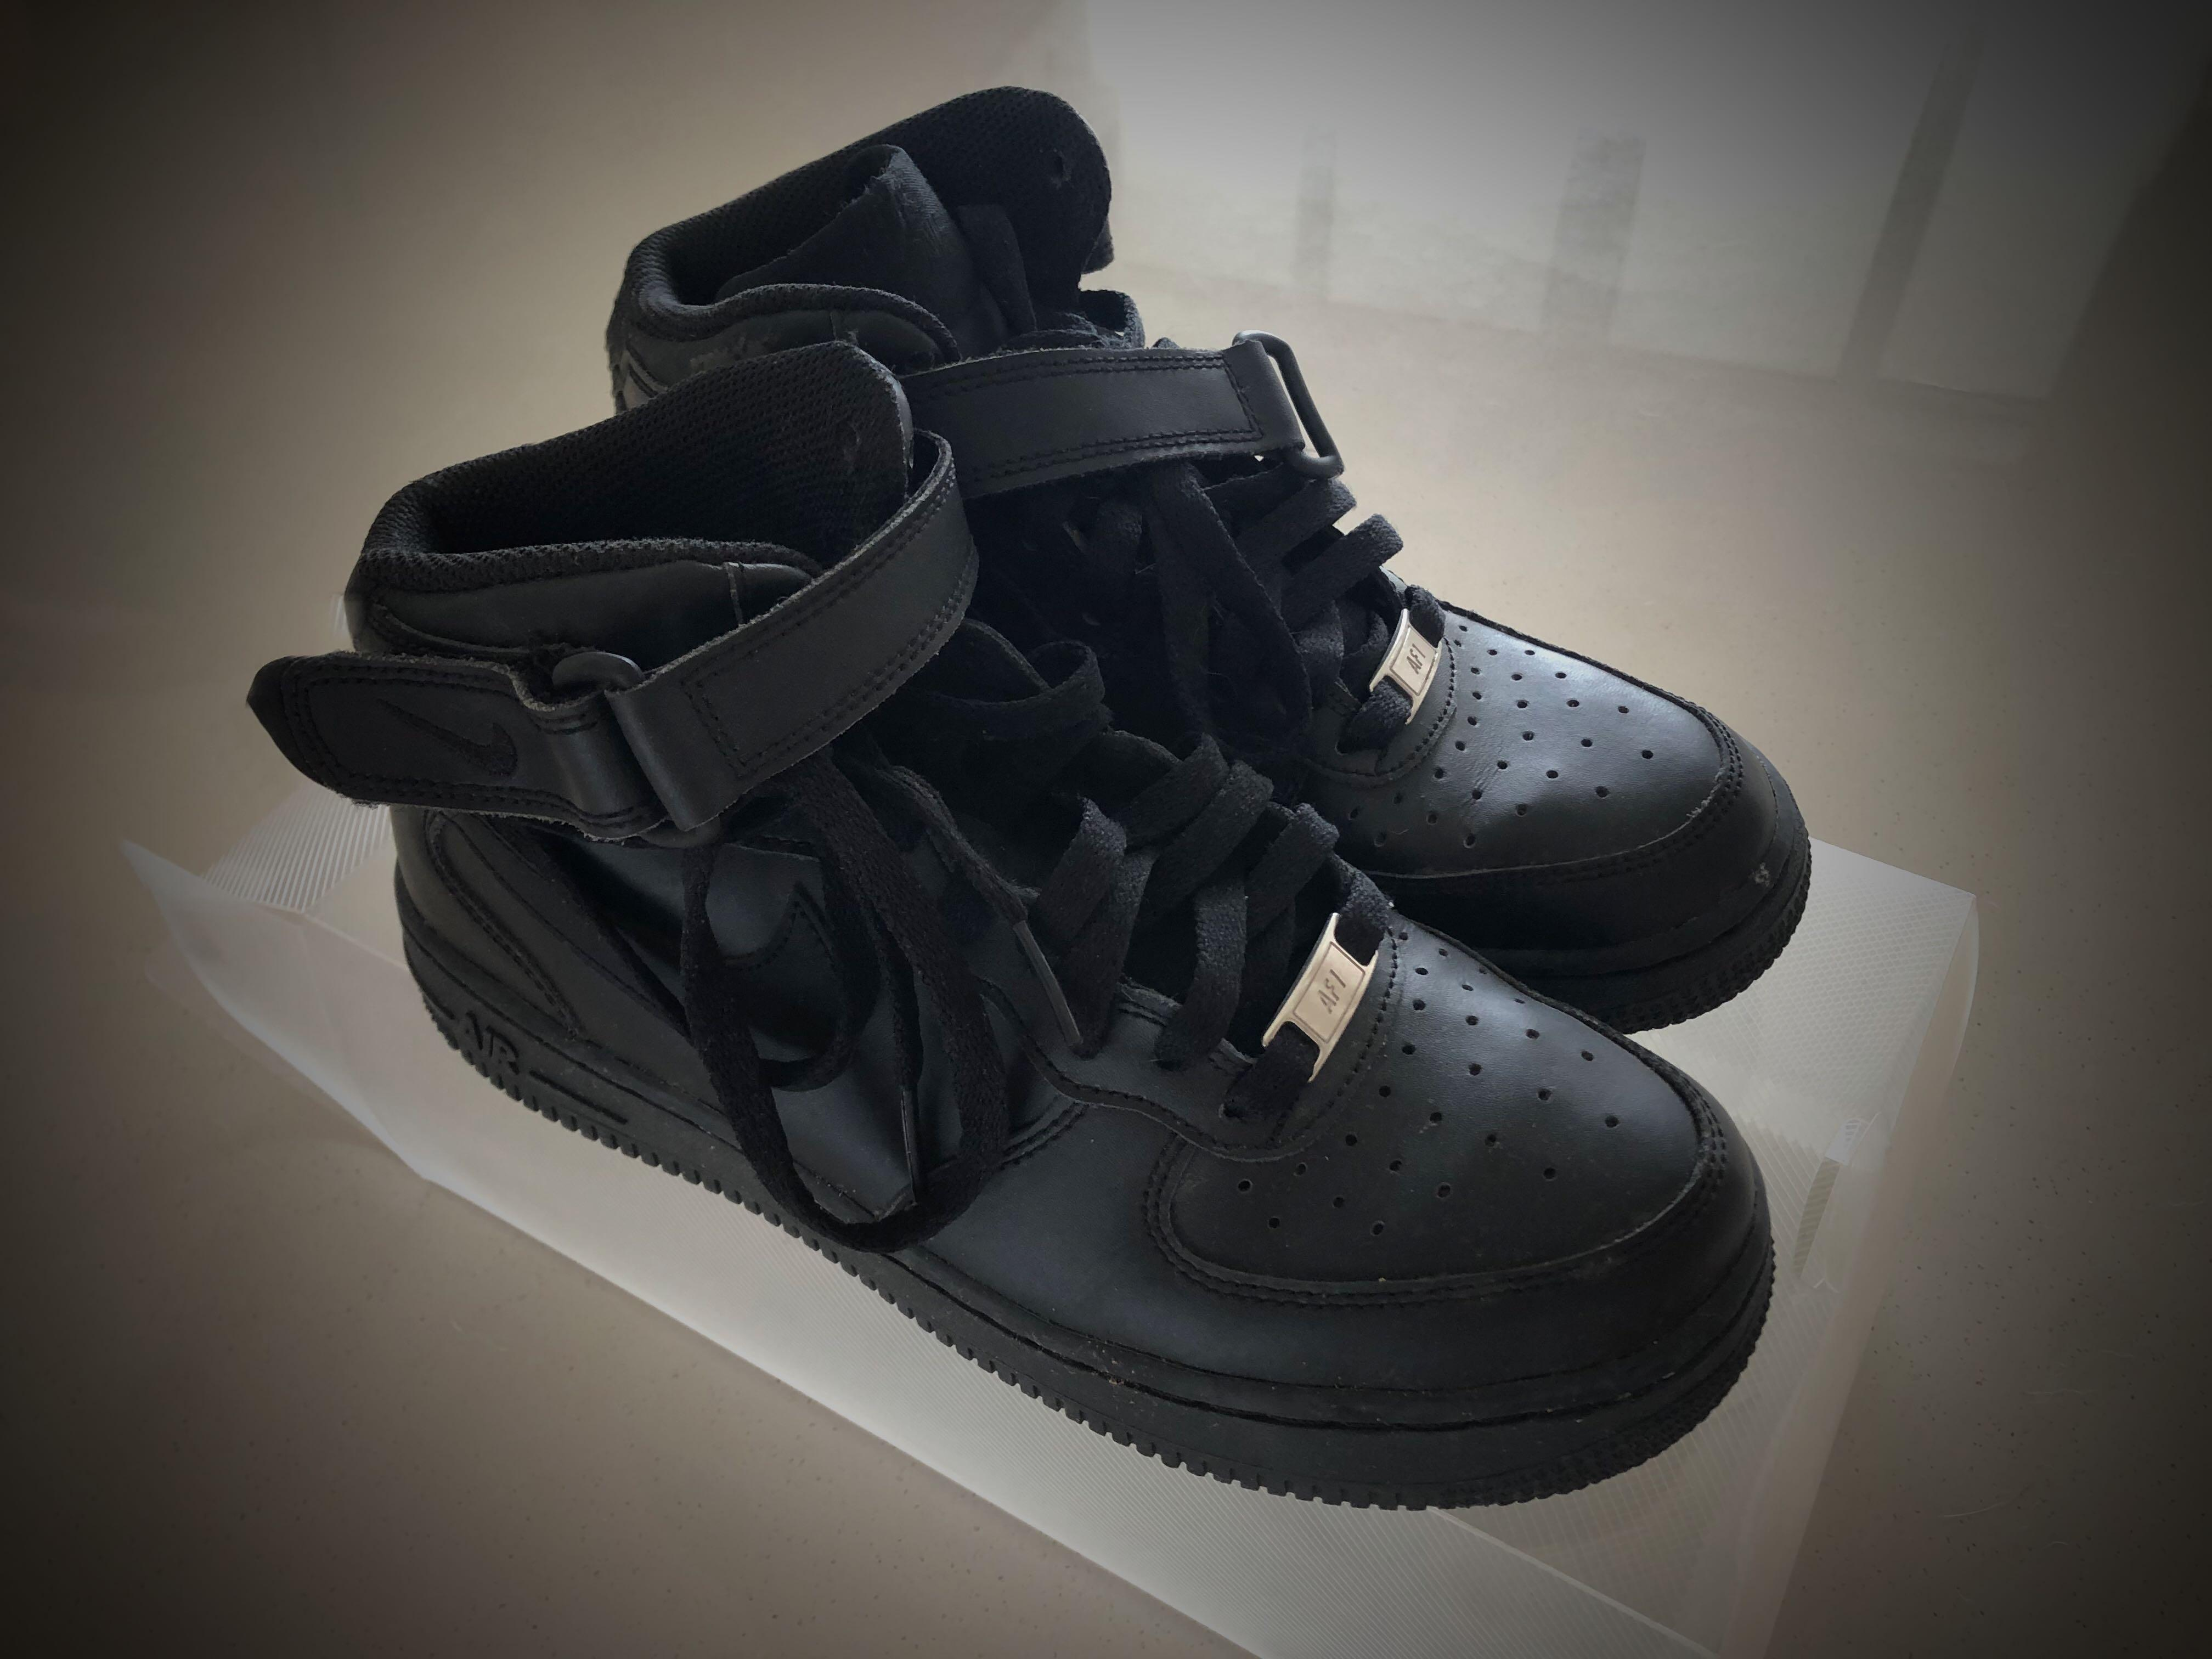 Nike Air Force 1 Velcro ankle strap